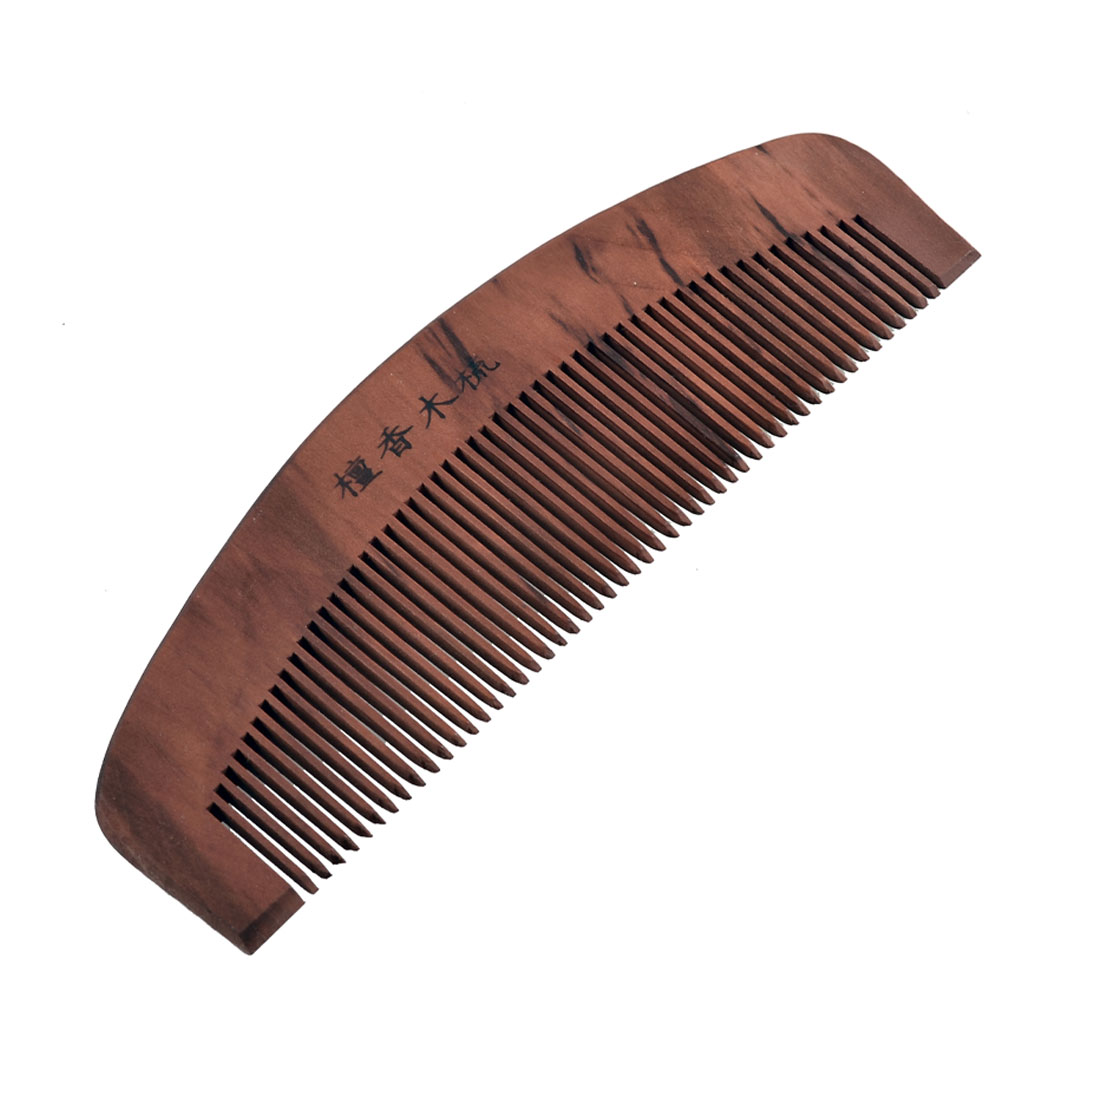 Rosewood-Sandal-Wood-Natural-Hair-Care-Wooden-Comb-6